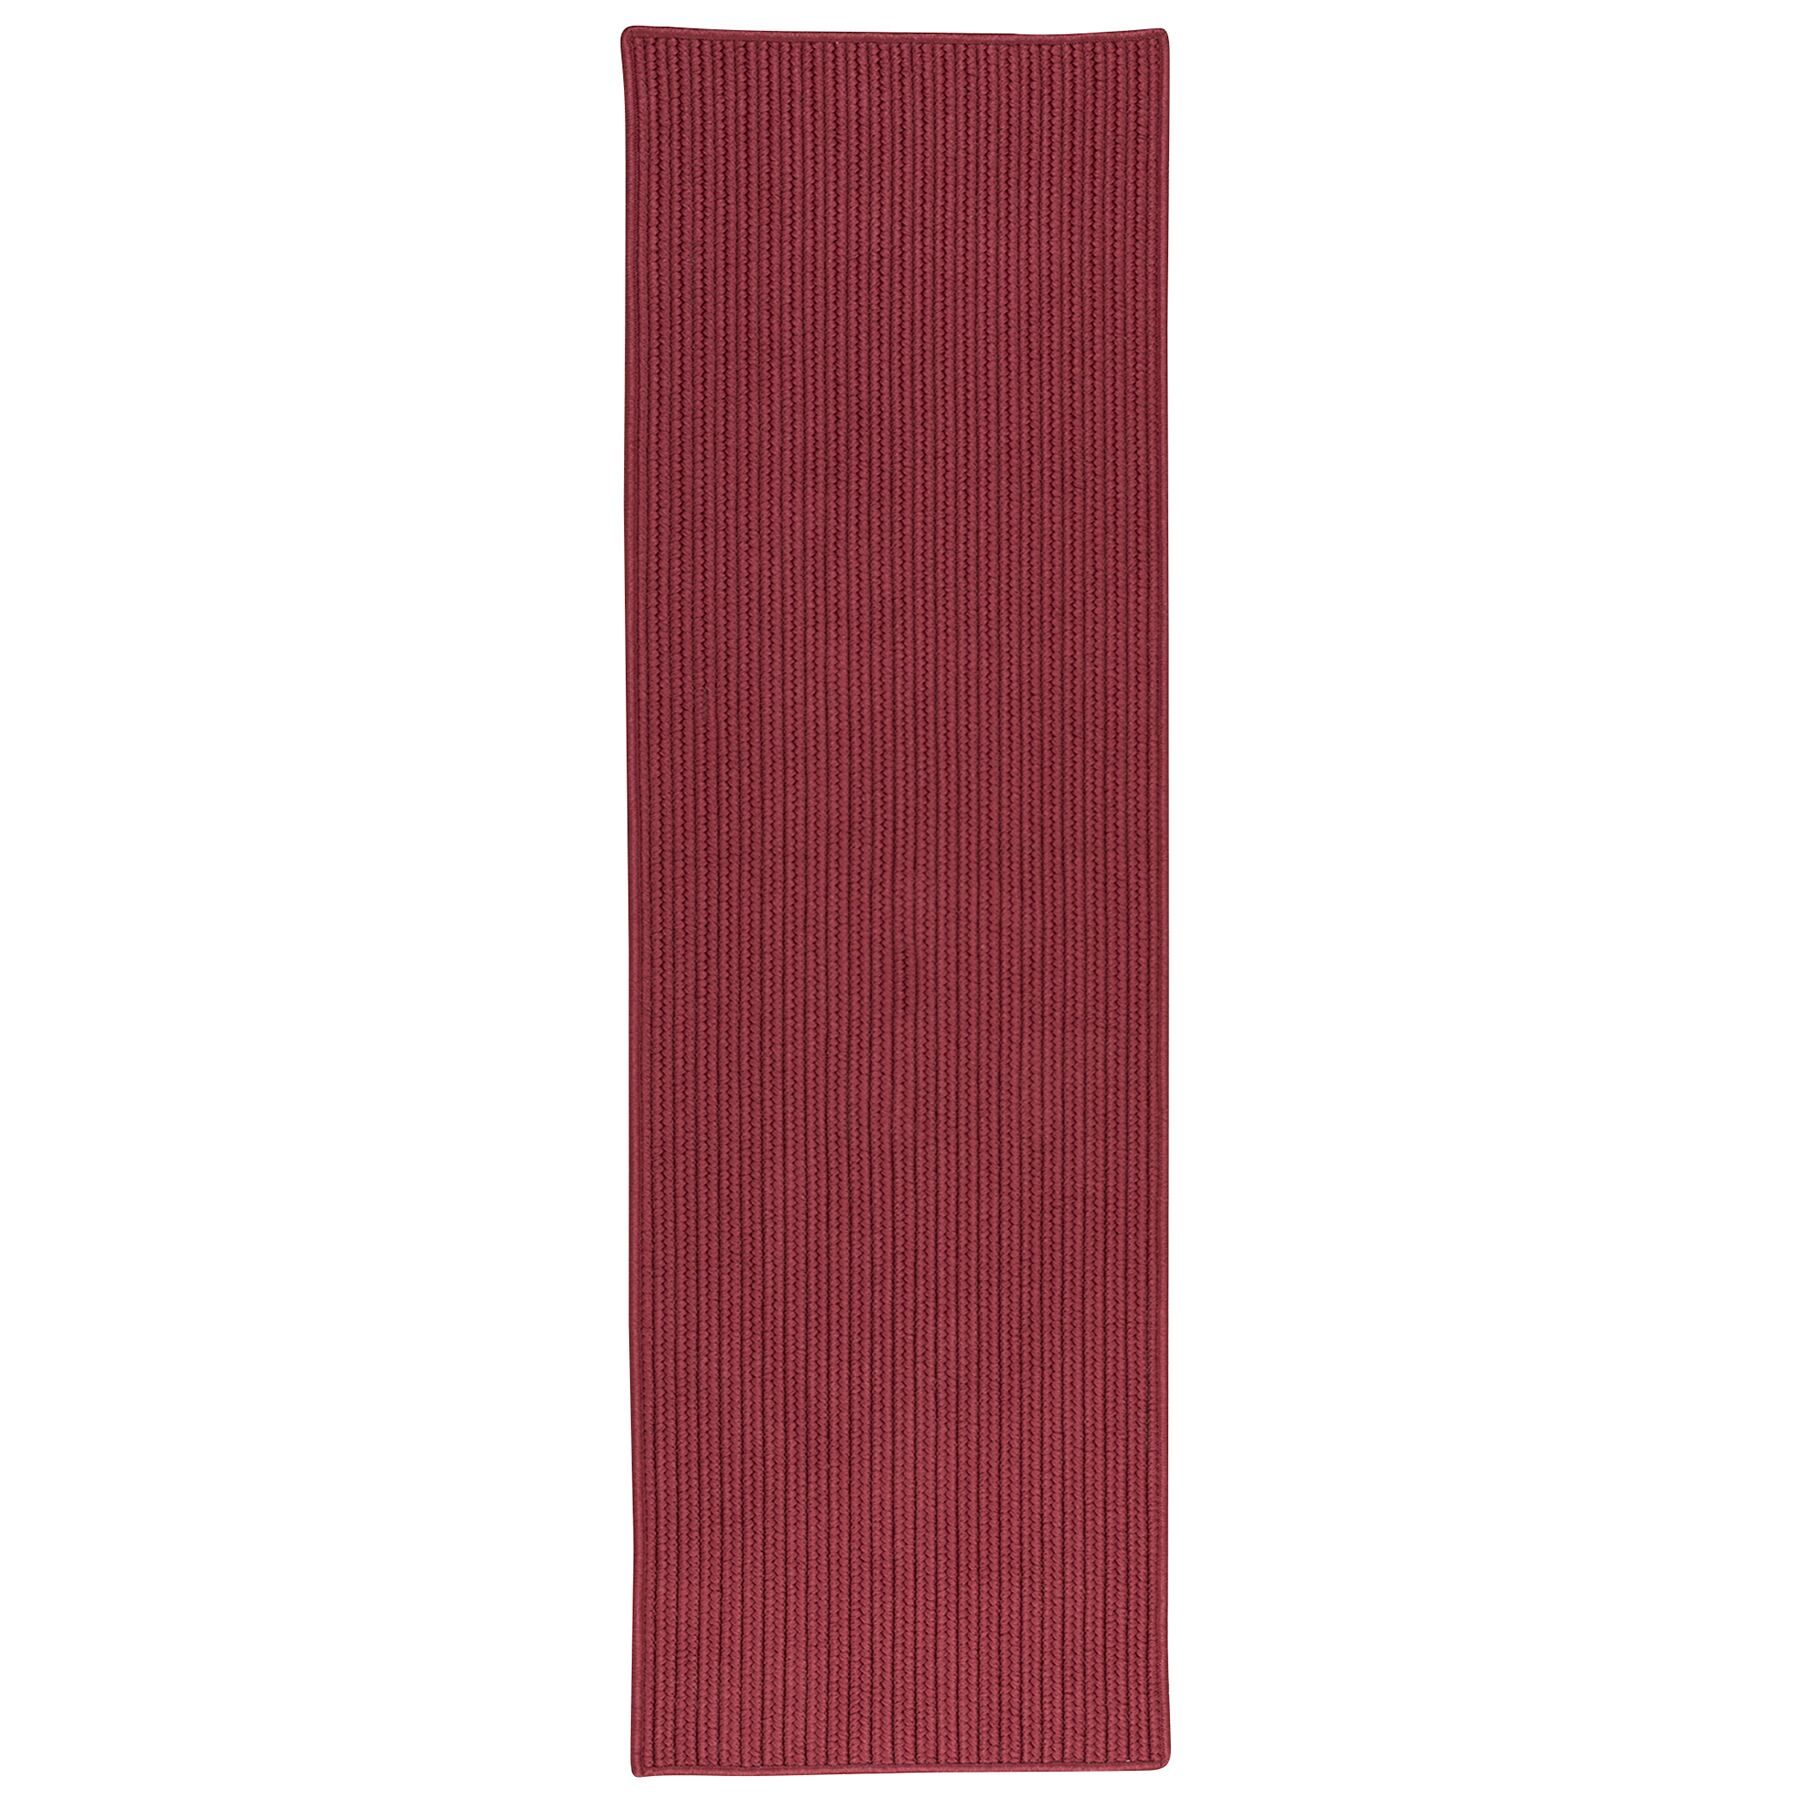 Carissa All-Purpose Mudroom Hand-Braided Brick Red Area Rug Rug Size: Runner 2' x 10'